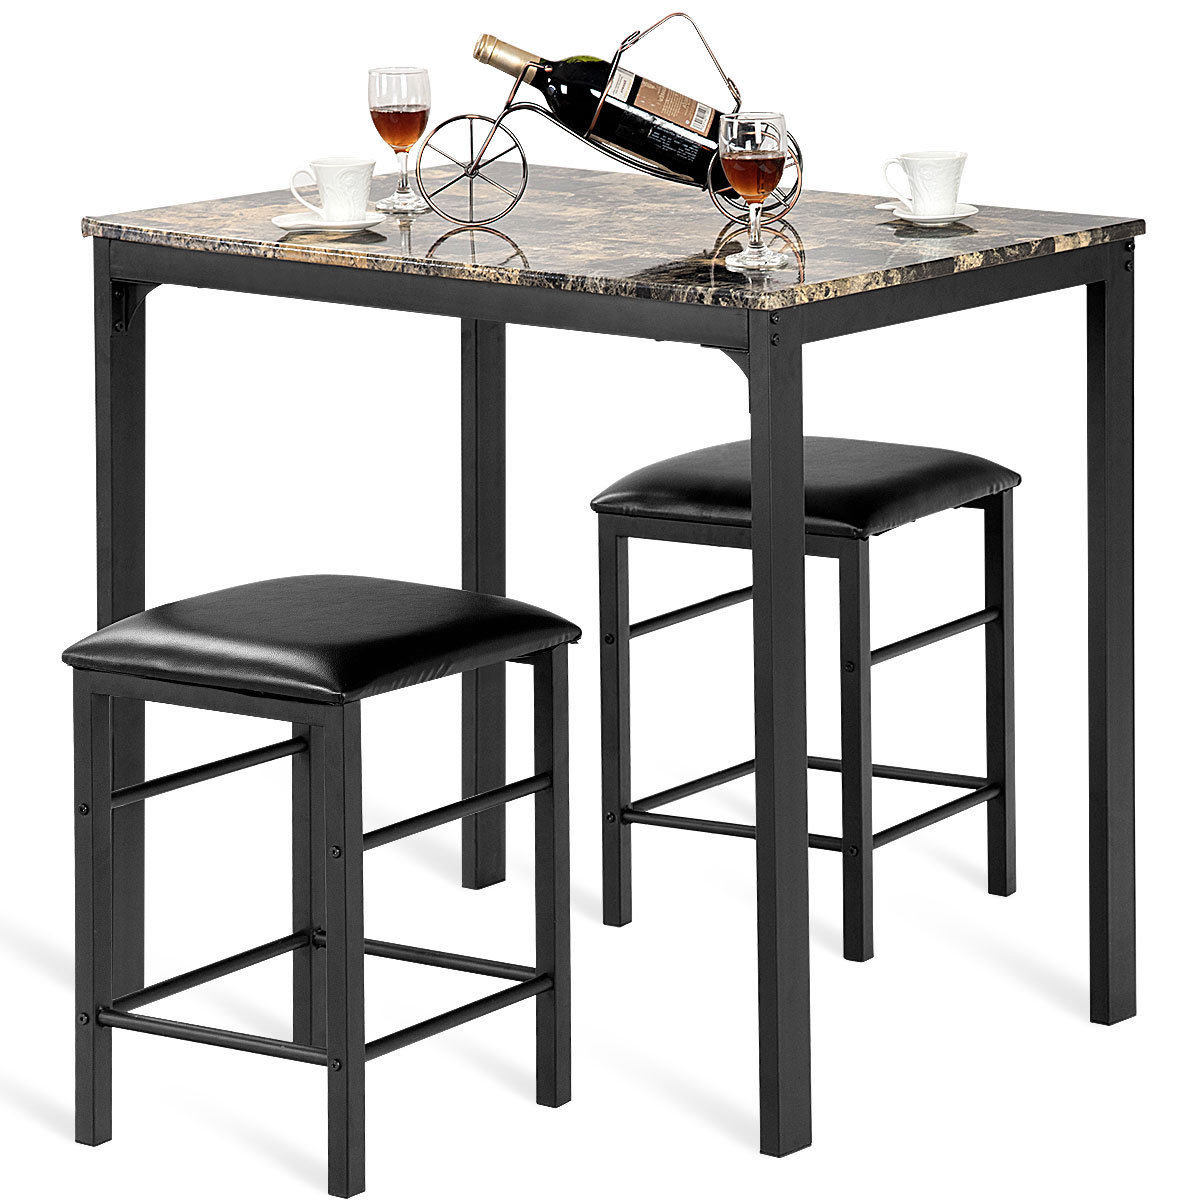 Wayfair Pertaining To Askern 3 Piece Counter Height Dining Sets (Set Of 3) (View 3 of 25)